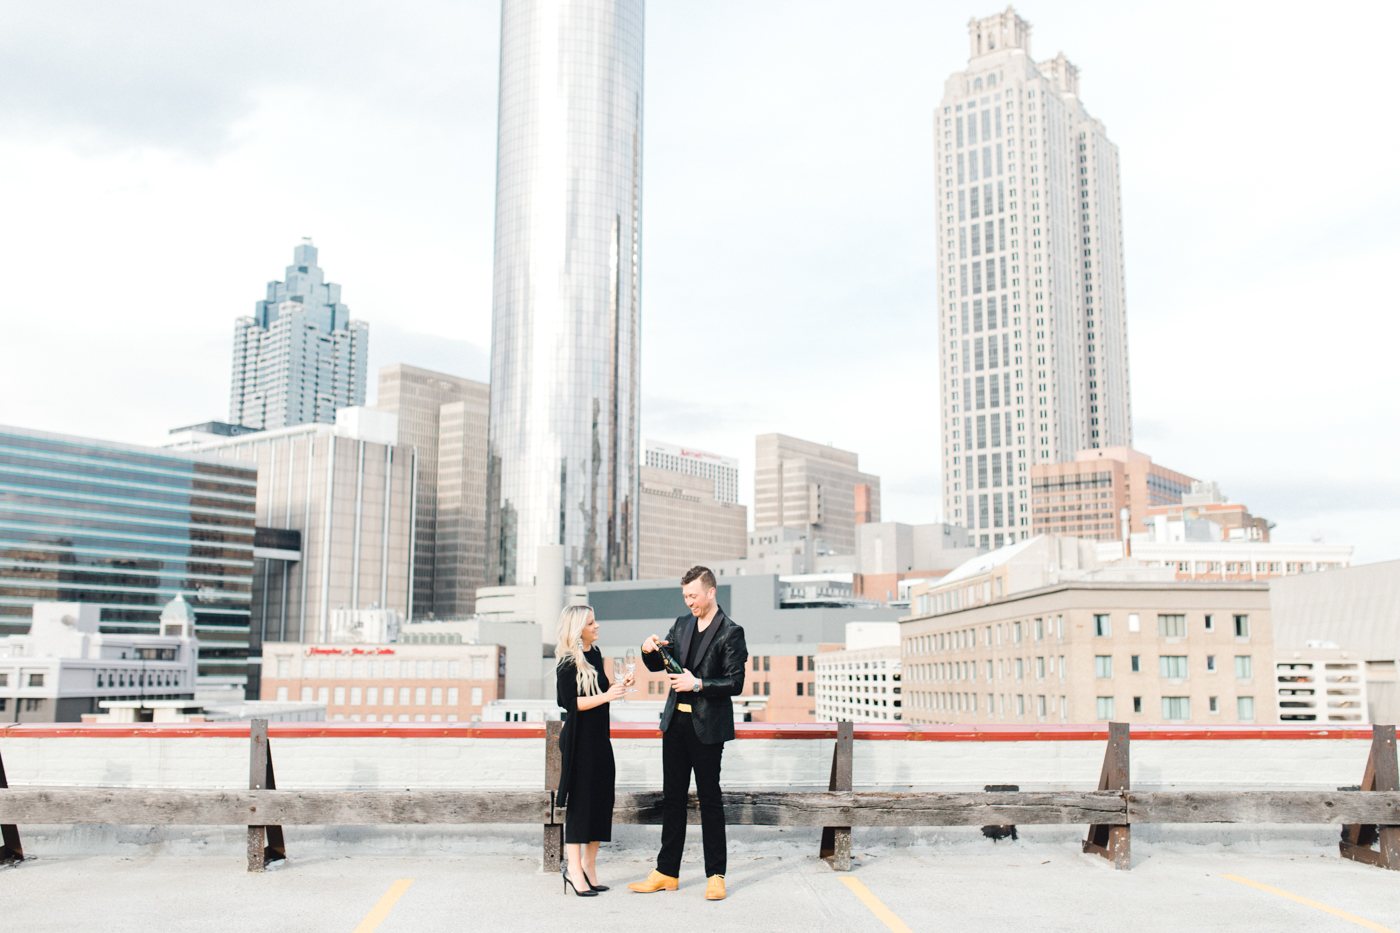 four corners photography best atlanta wedding photographer downtown atlanta engagement session engagement proposal ventanas downtown atlanta wedding atlanta wedding photographer-1.jpg